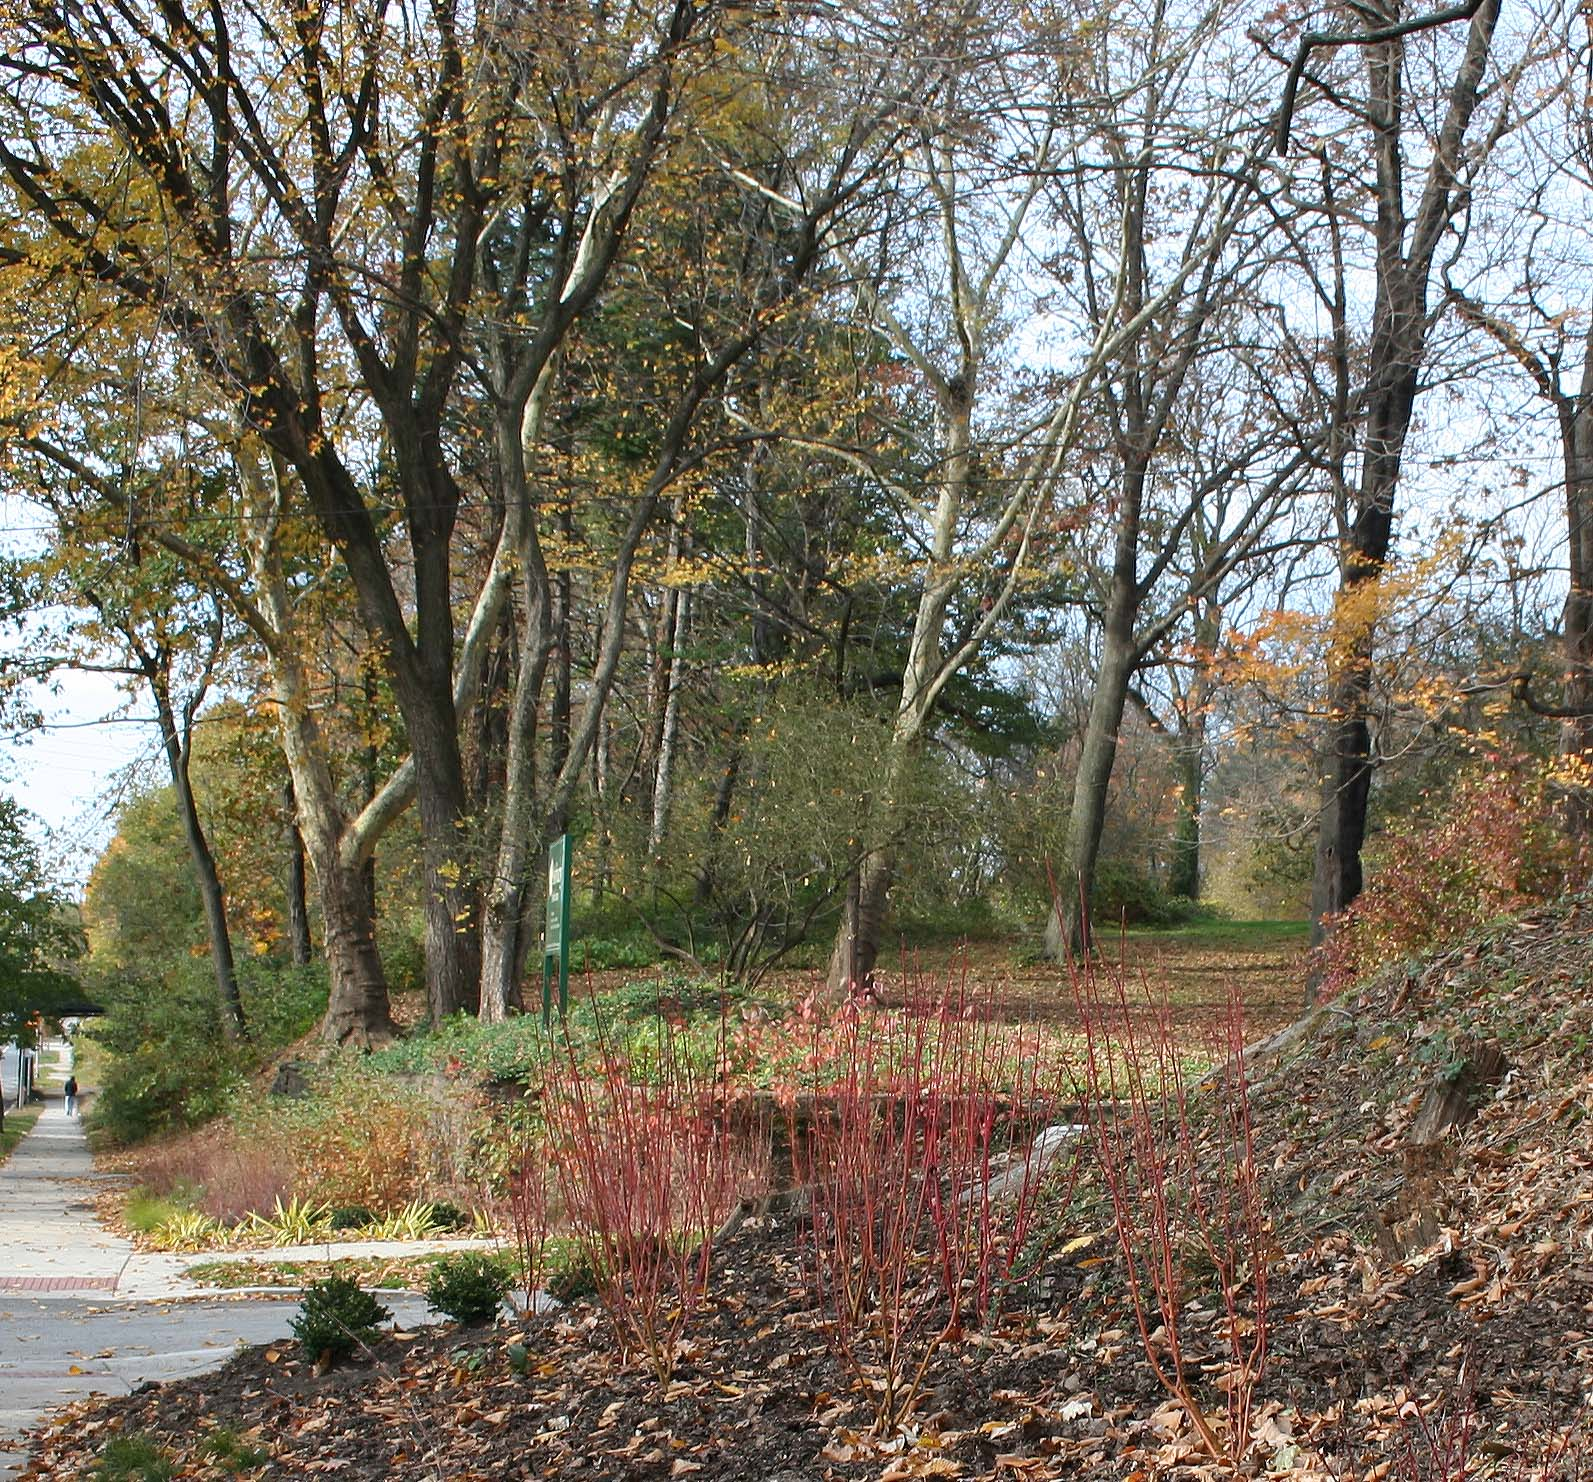 Thinning tree canopy and fall color at the Chew Avenue Entrance to Awbury Arboretum, photo: C. Levy